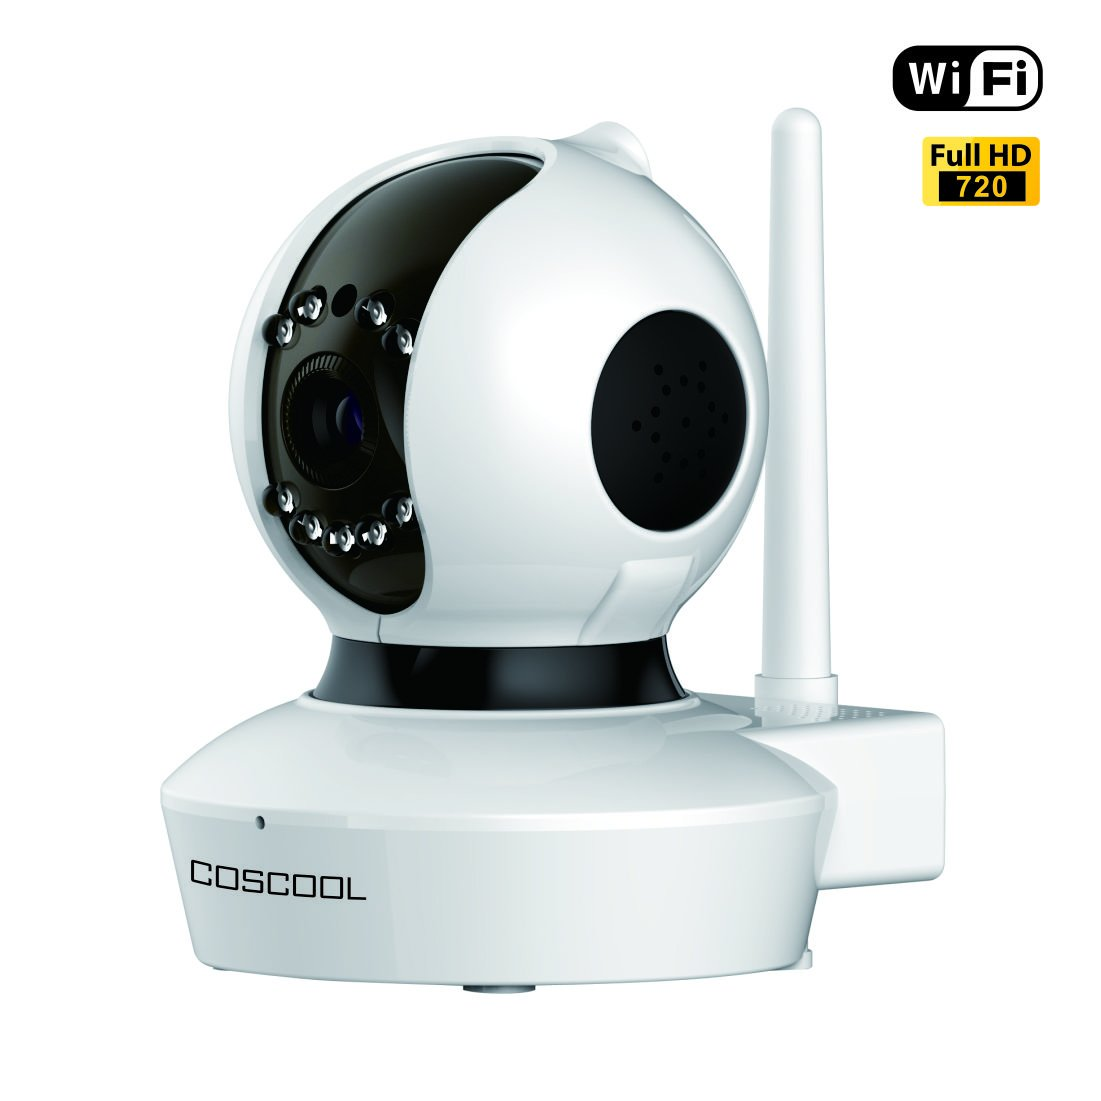 CosCool IP Camera 720P Wireless,Wifi Surveillance Camera Network Security Webcam,Microphone Inside,Two Way Audio,Onekey Wifi Fast Setting,Night Vision,ONIVF,Pan/Tilt Movement Baby Pet Video Monitor